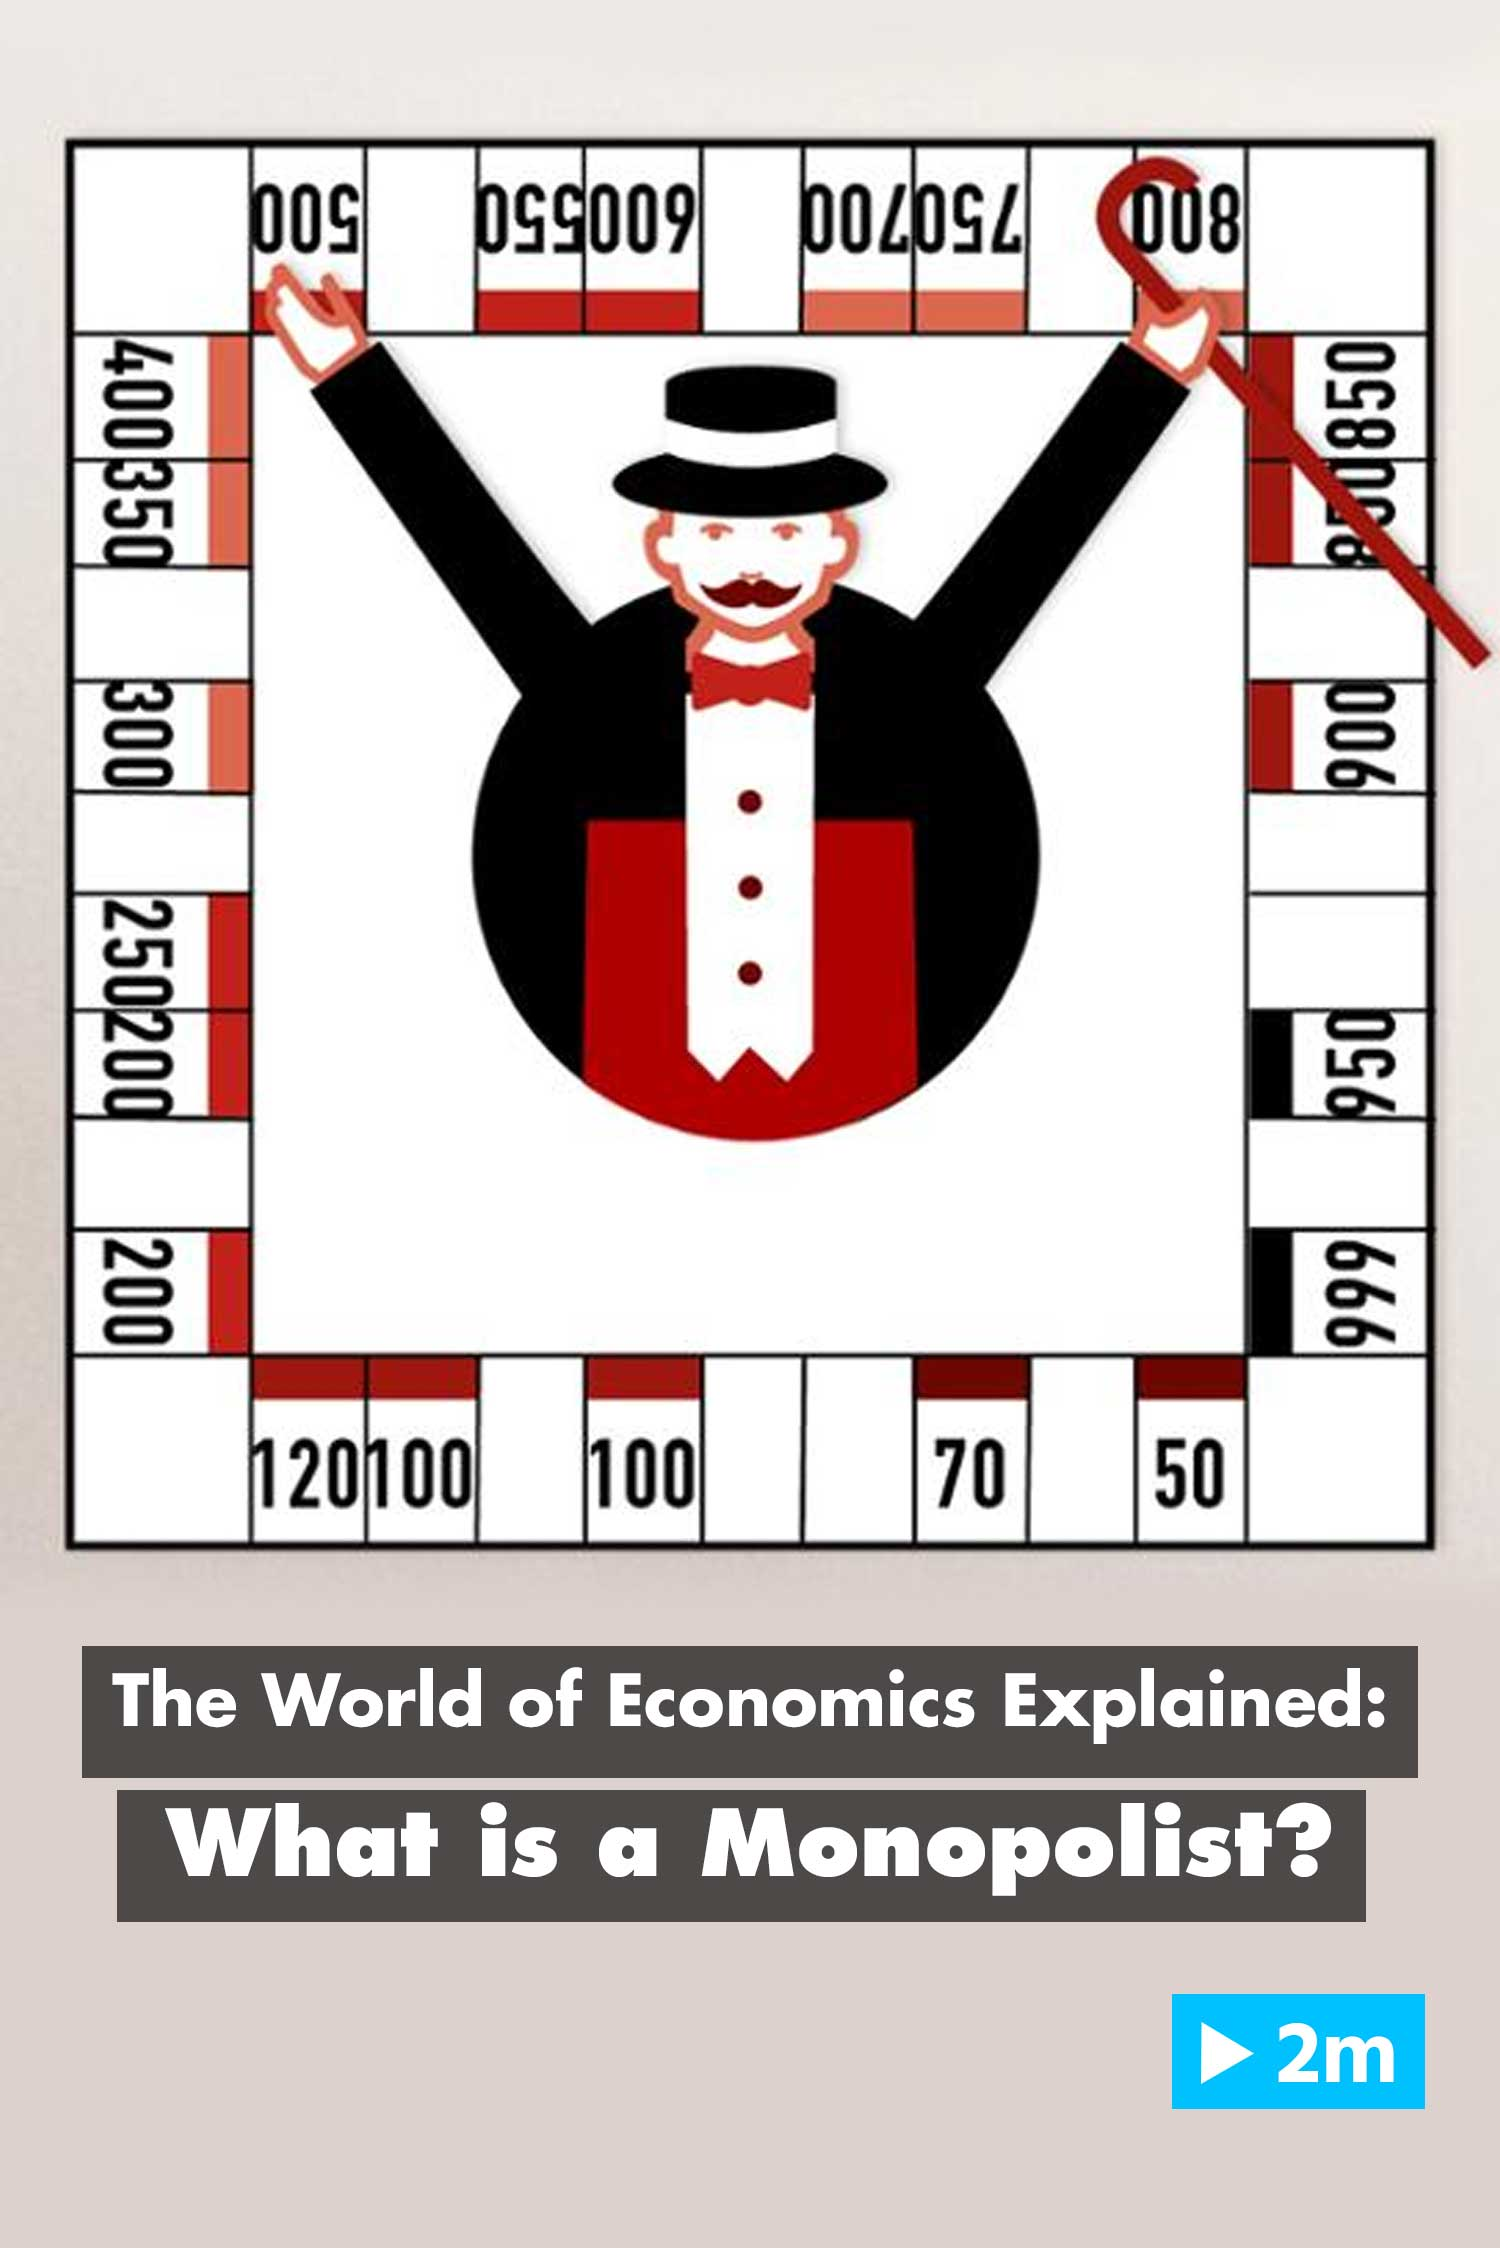 The World of Economics Explained: What is a monopolist?